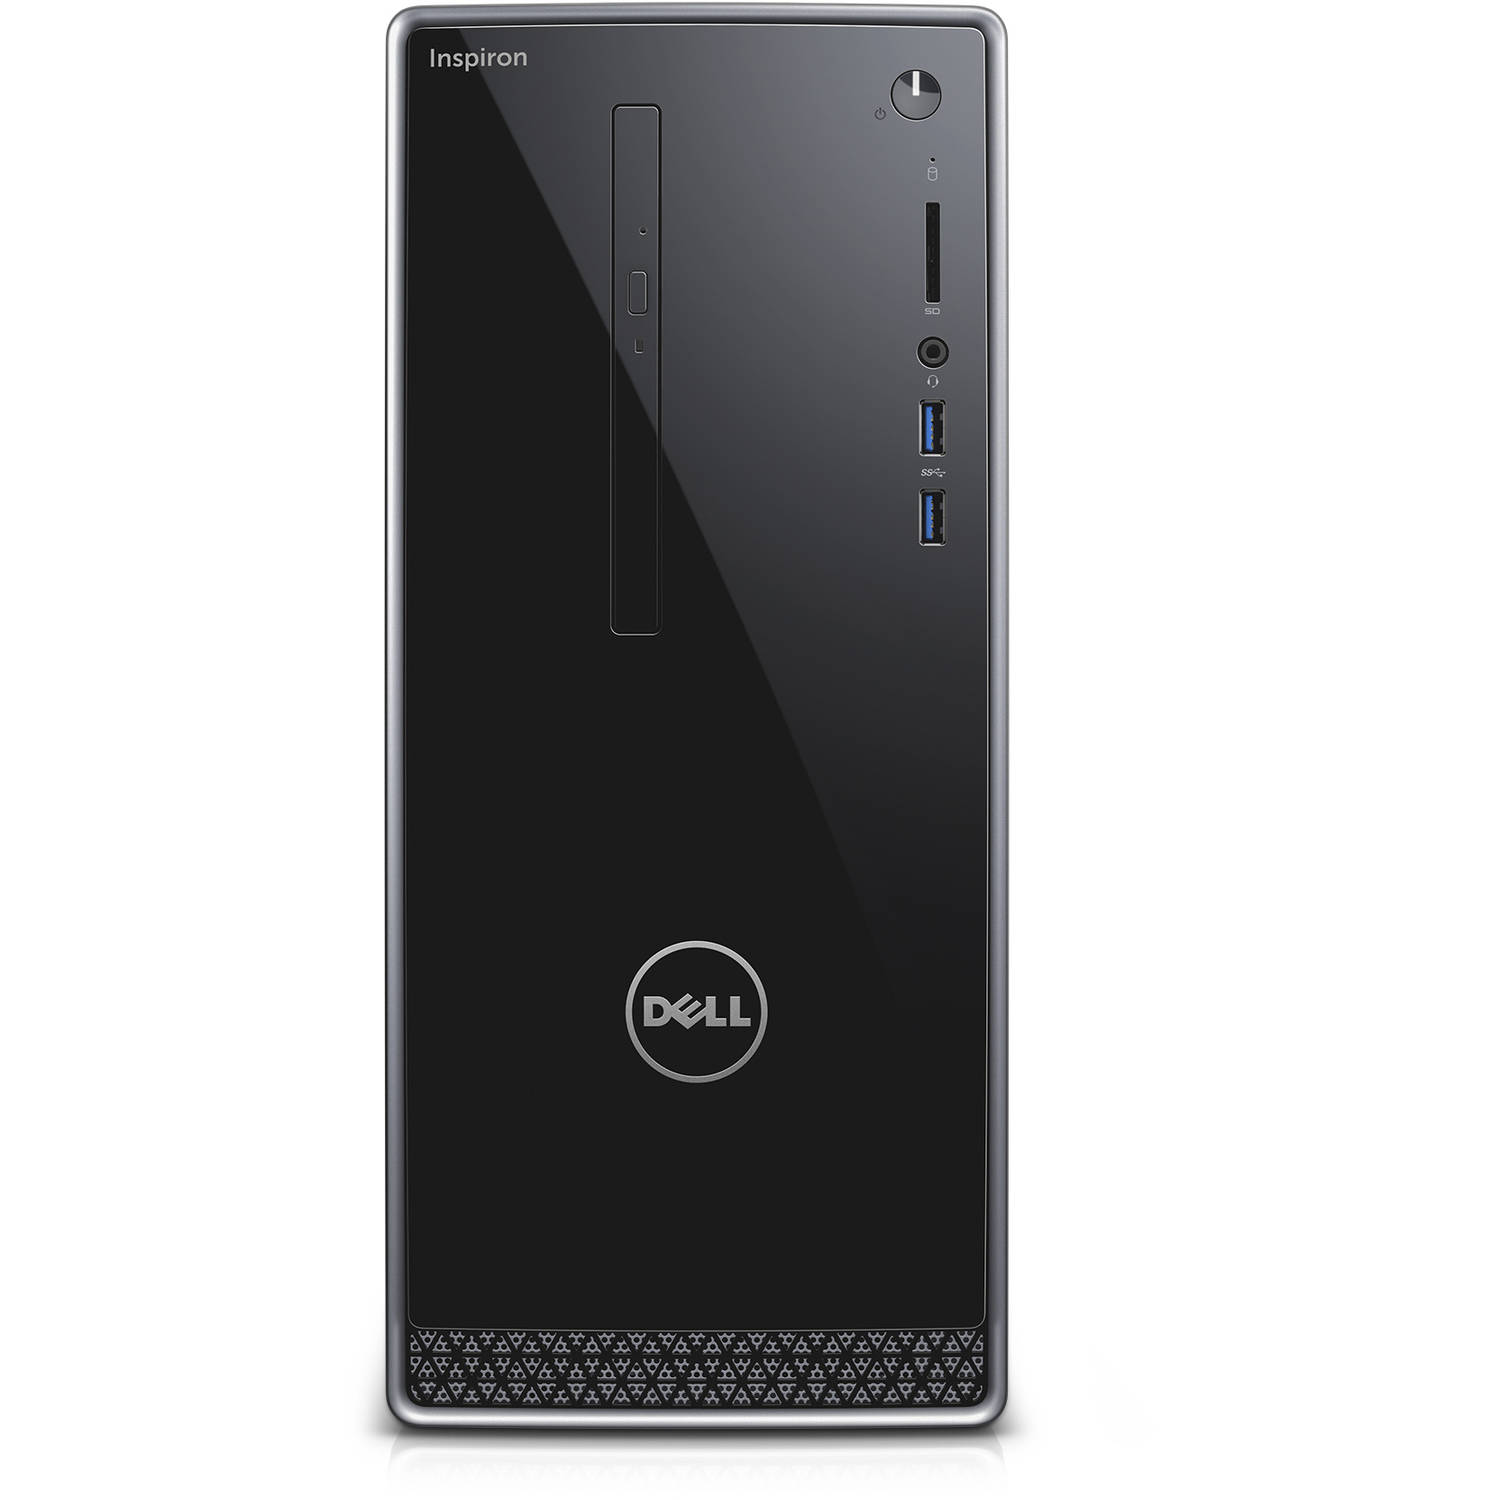 Dell - Inspiron 3650 Desktop - Intel Core i5 - 8GB Memory - 1